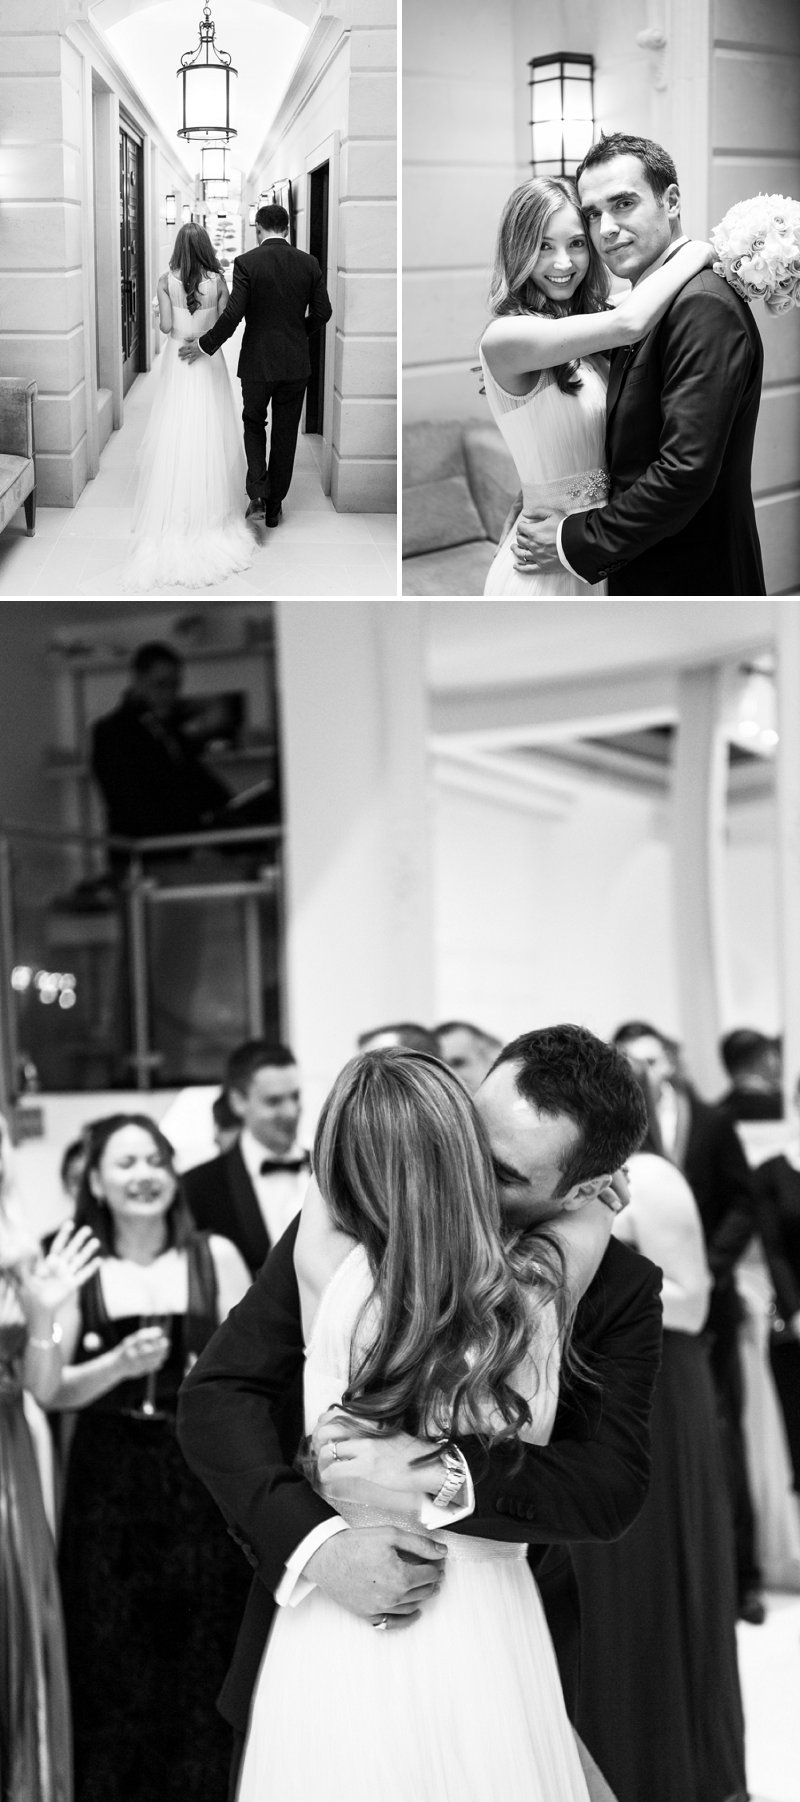 Elegant Wedding At The Connaught Hotel Mayfair With Bride In Derby By Pronovias With Jimmy Choo Sandals And Groom In Navy Suit By D&G With A Colombian Themed Evening Party At Icetank Covent Garden With Images From Anneli Marinovich 7